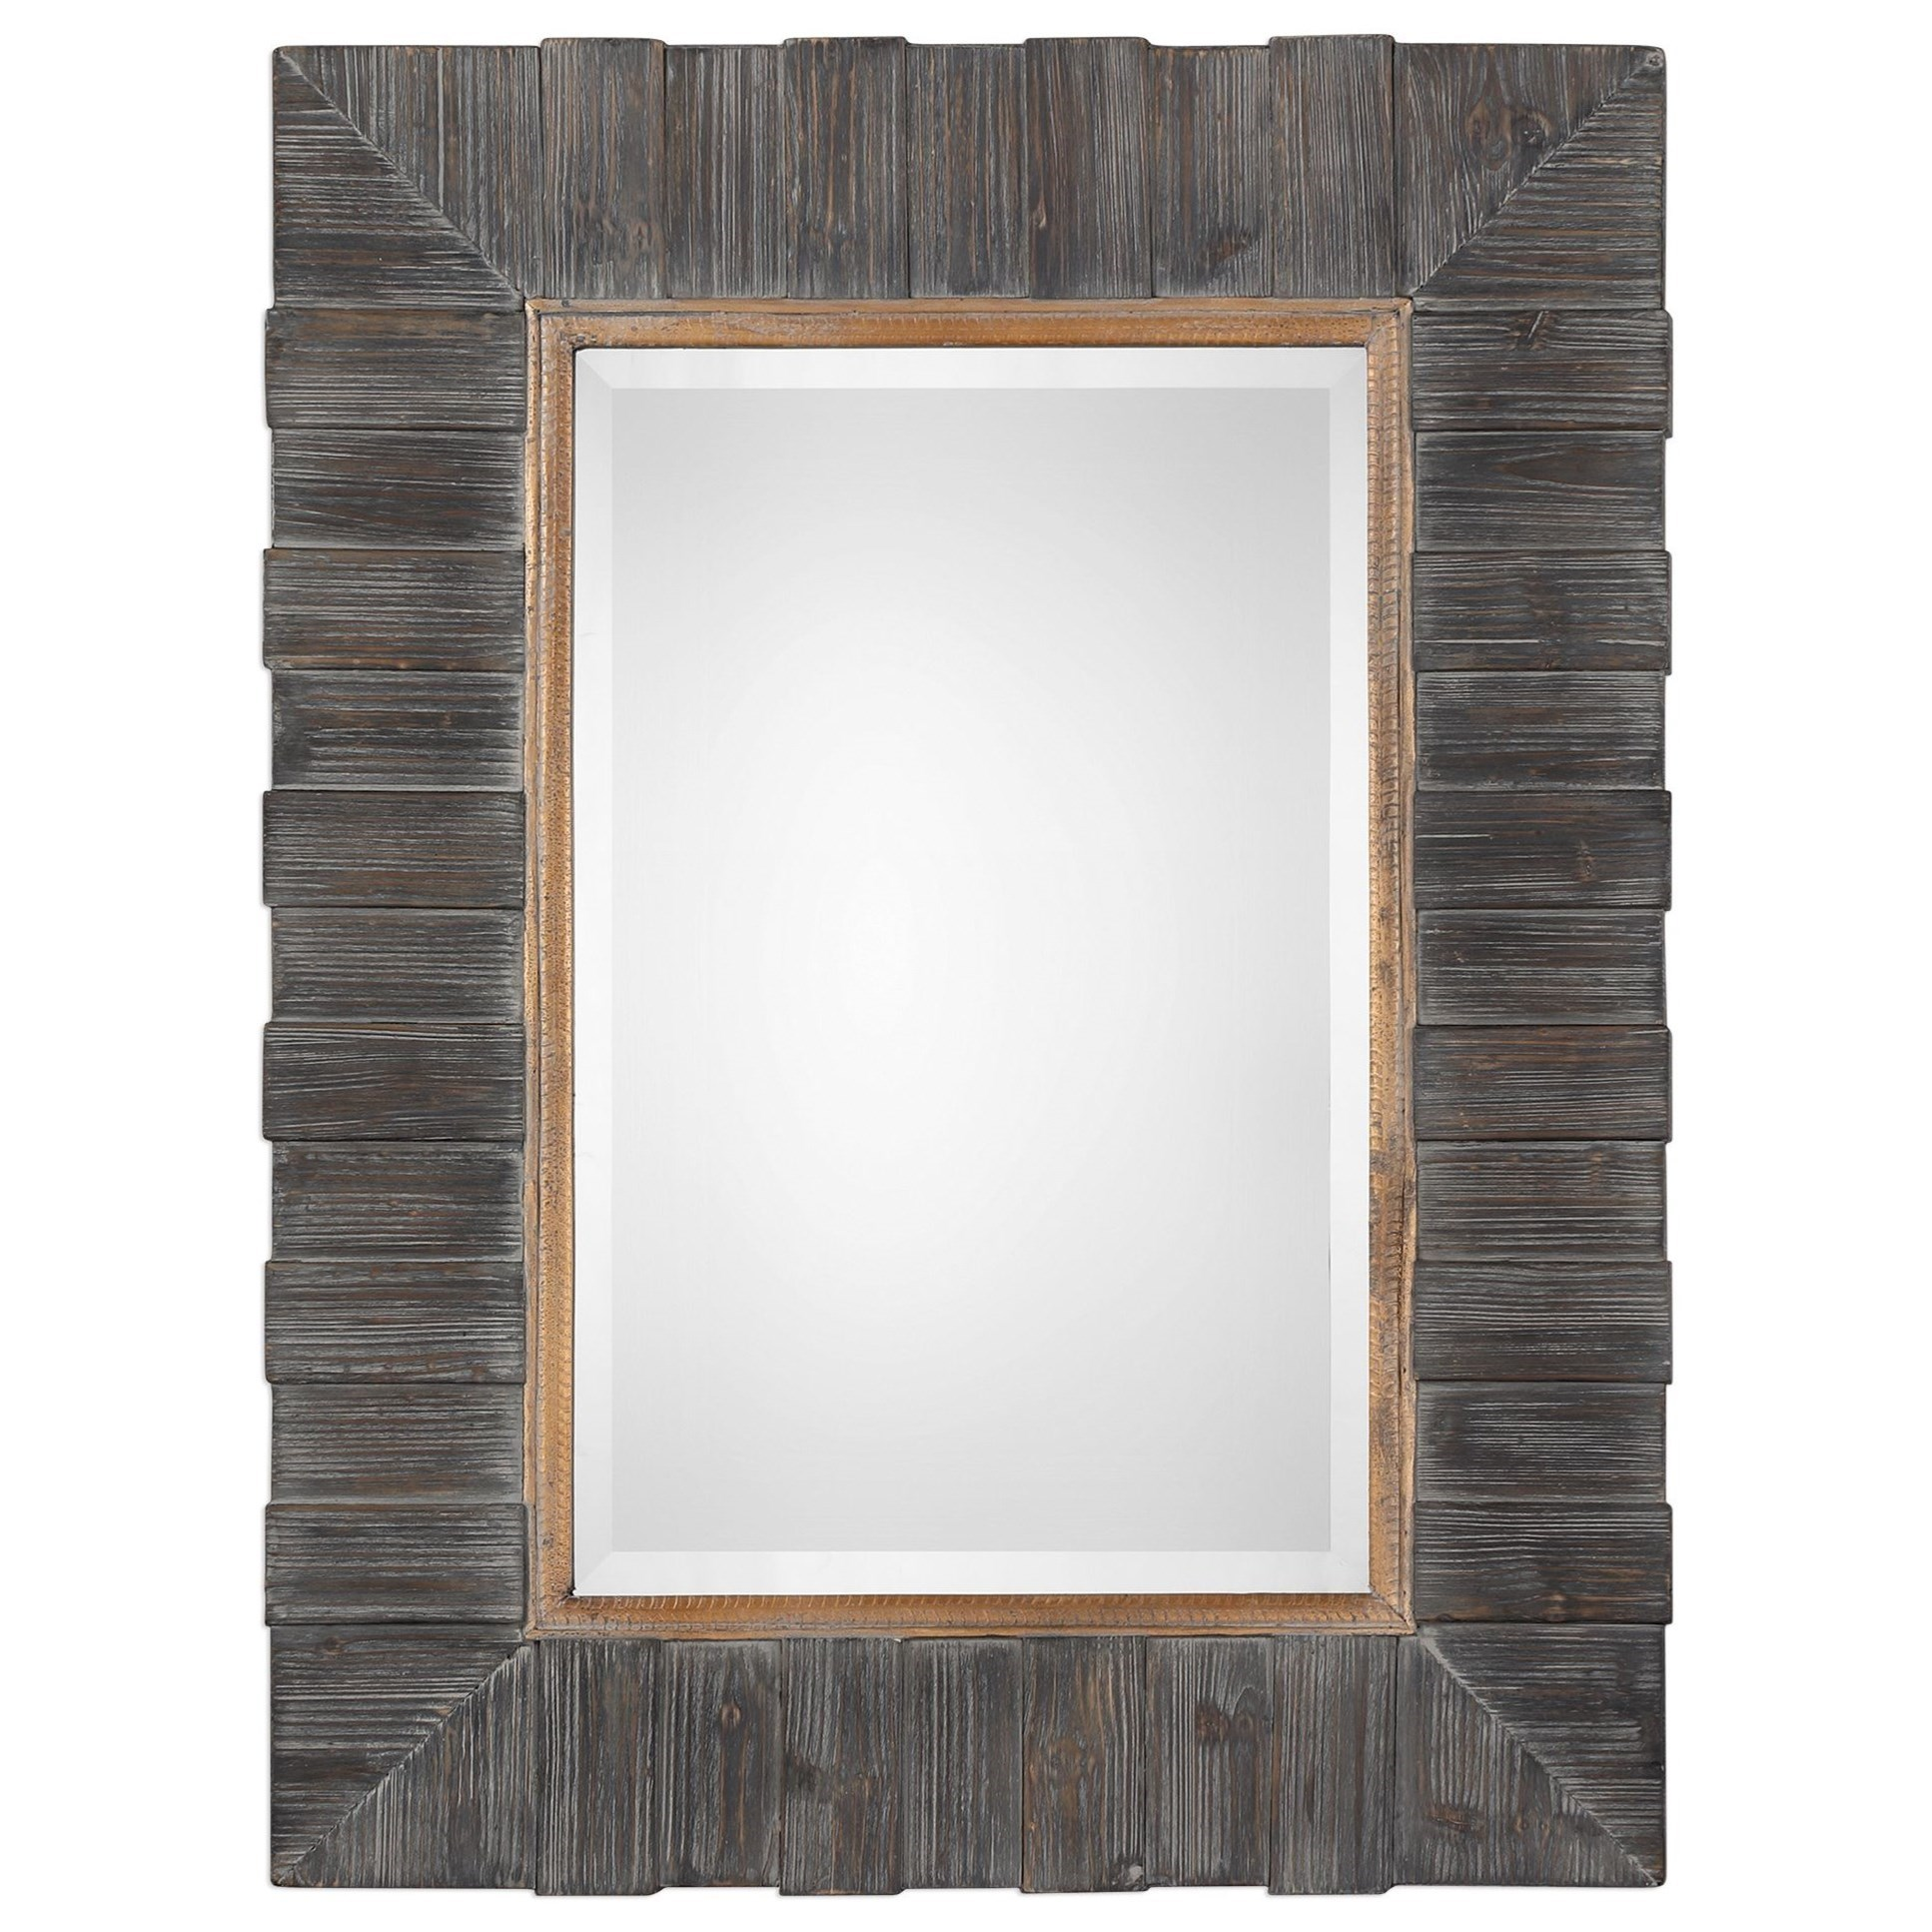 Mancos Rustic Wood Mirror